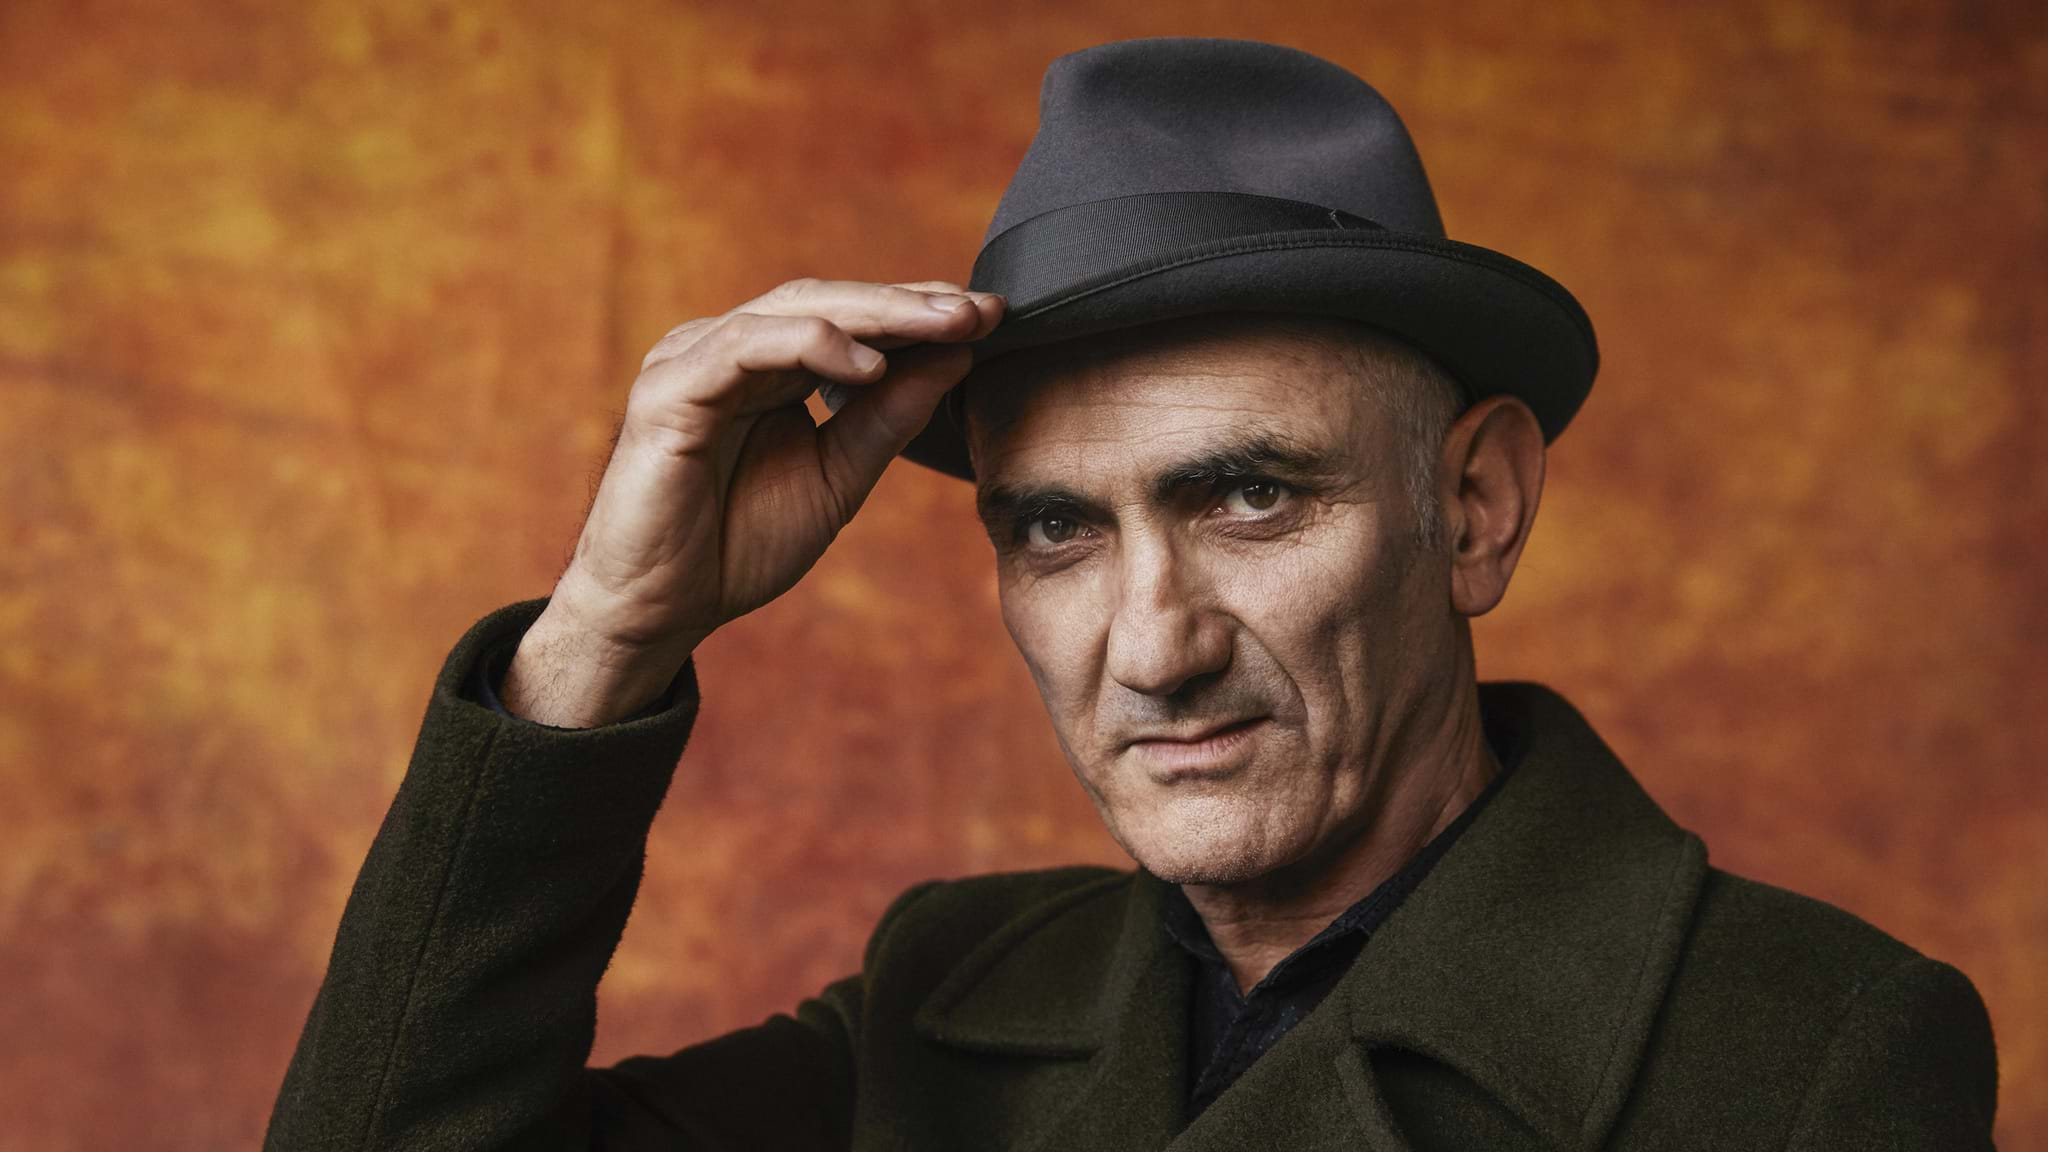 paul kelly - photo #23